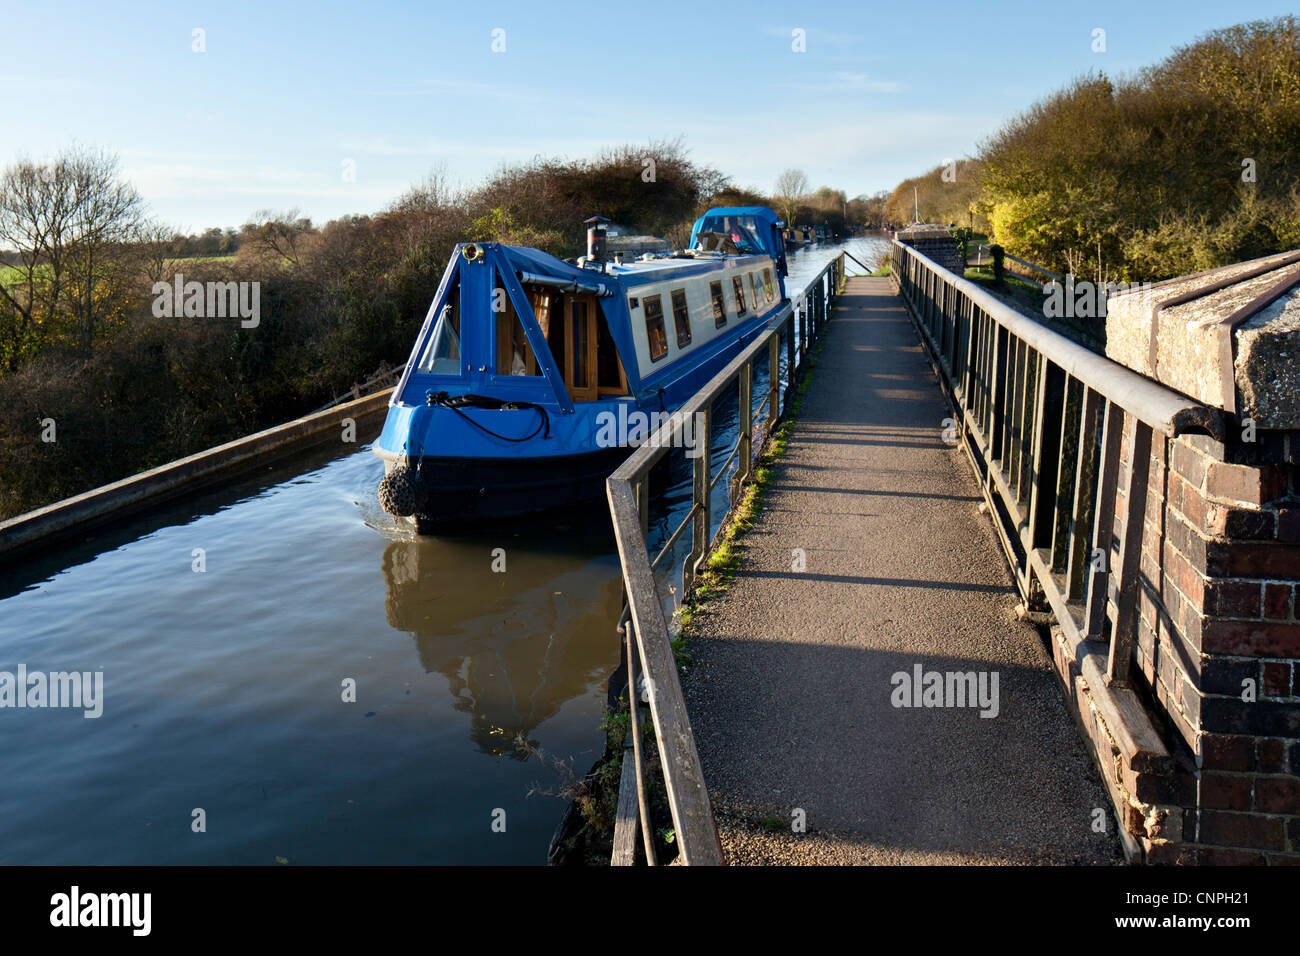 A canal boat crosses the Cosgrove Iron Trunk Aqueduct on the Grand Union Canal near to Milton Keynes, UK - Stock Image